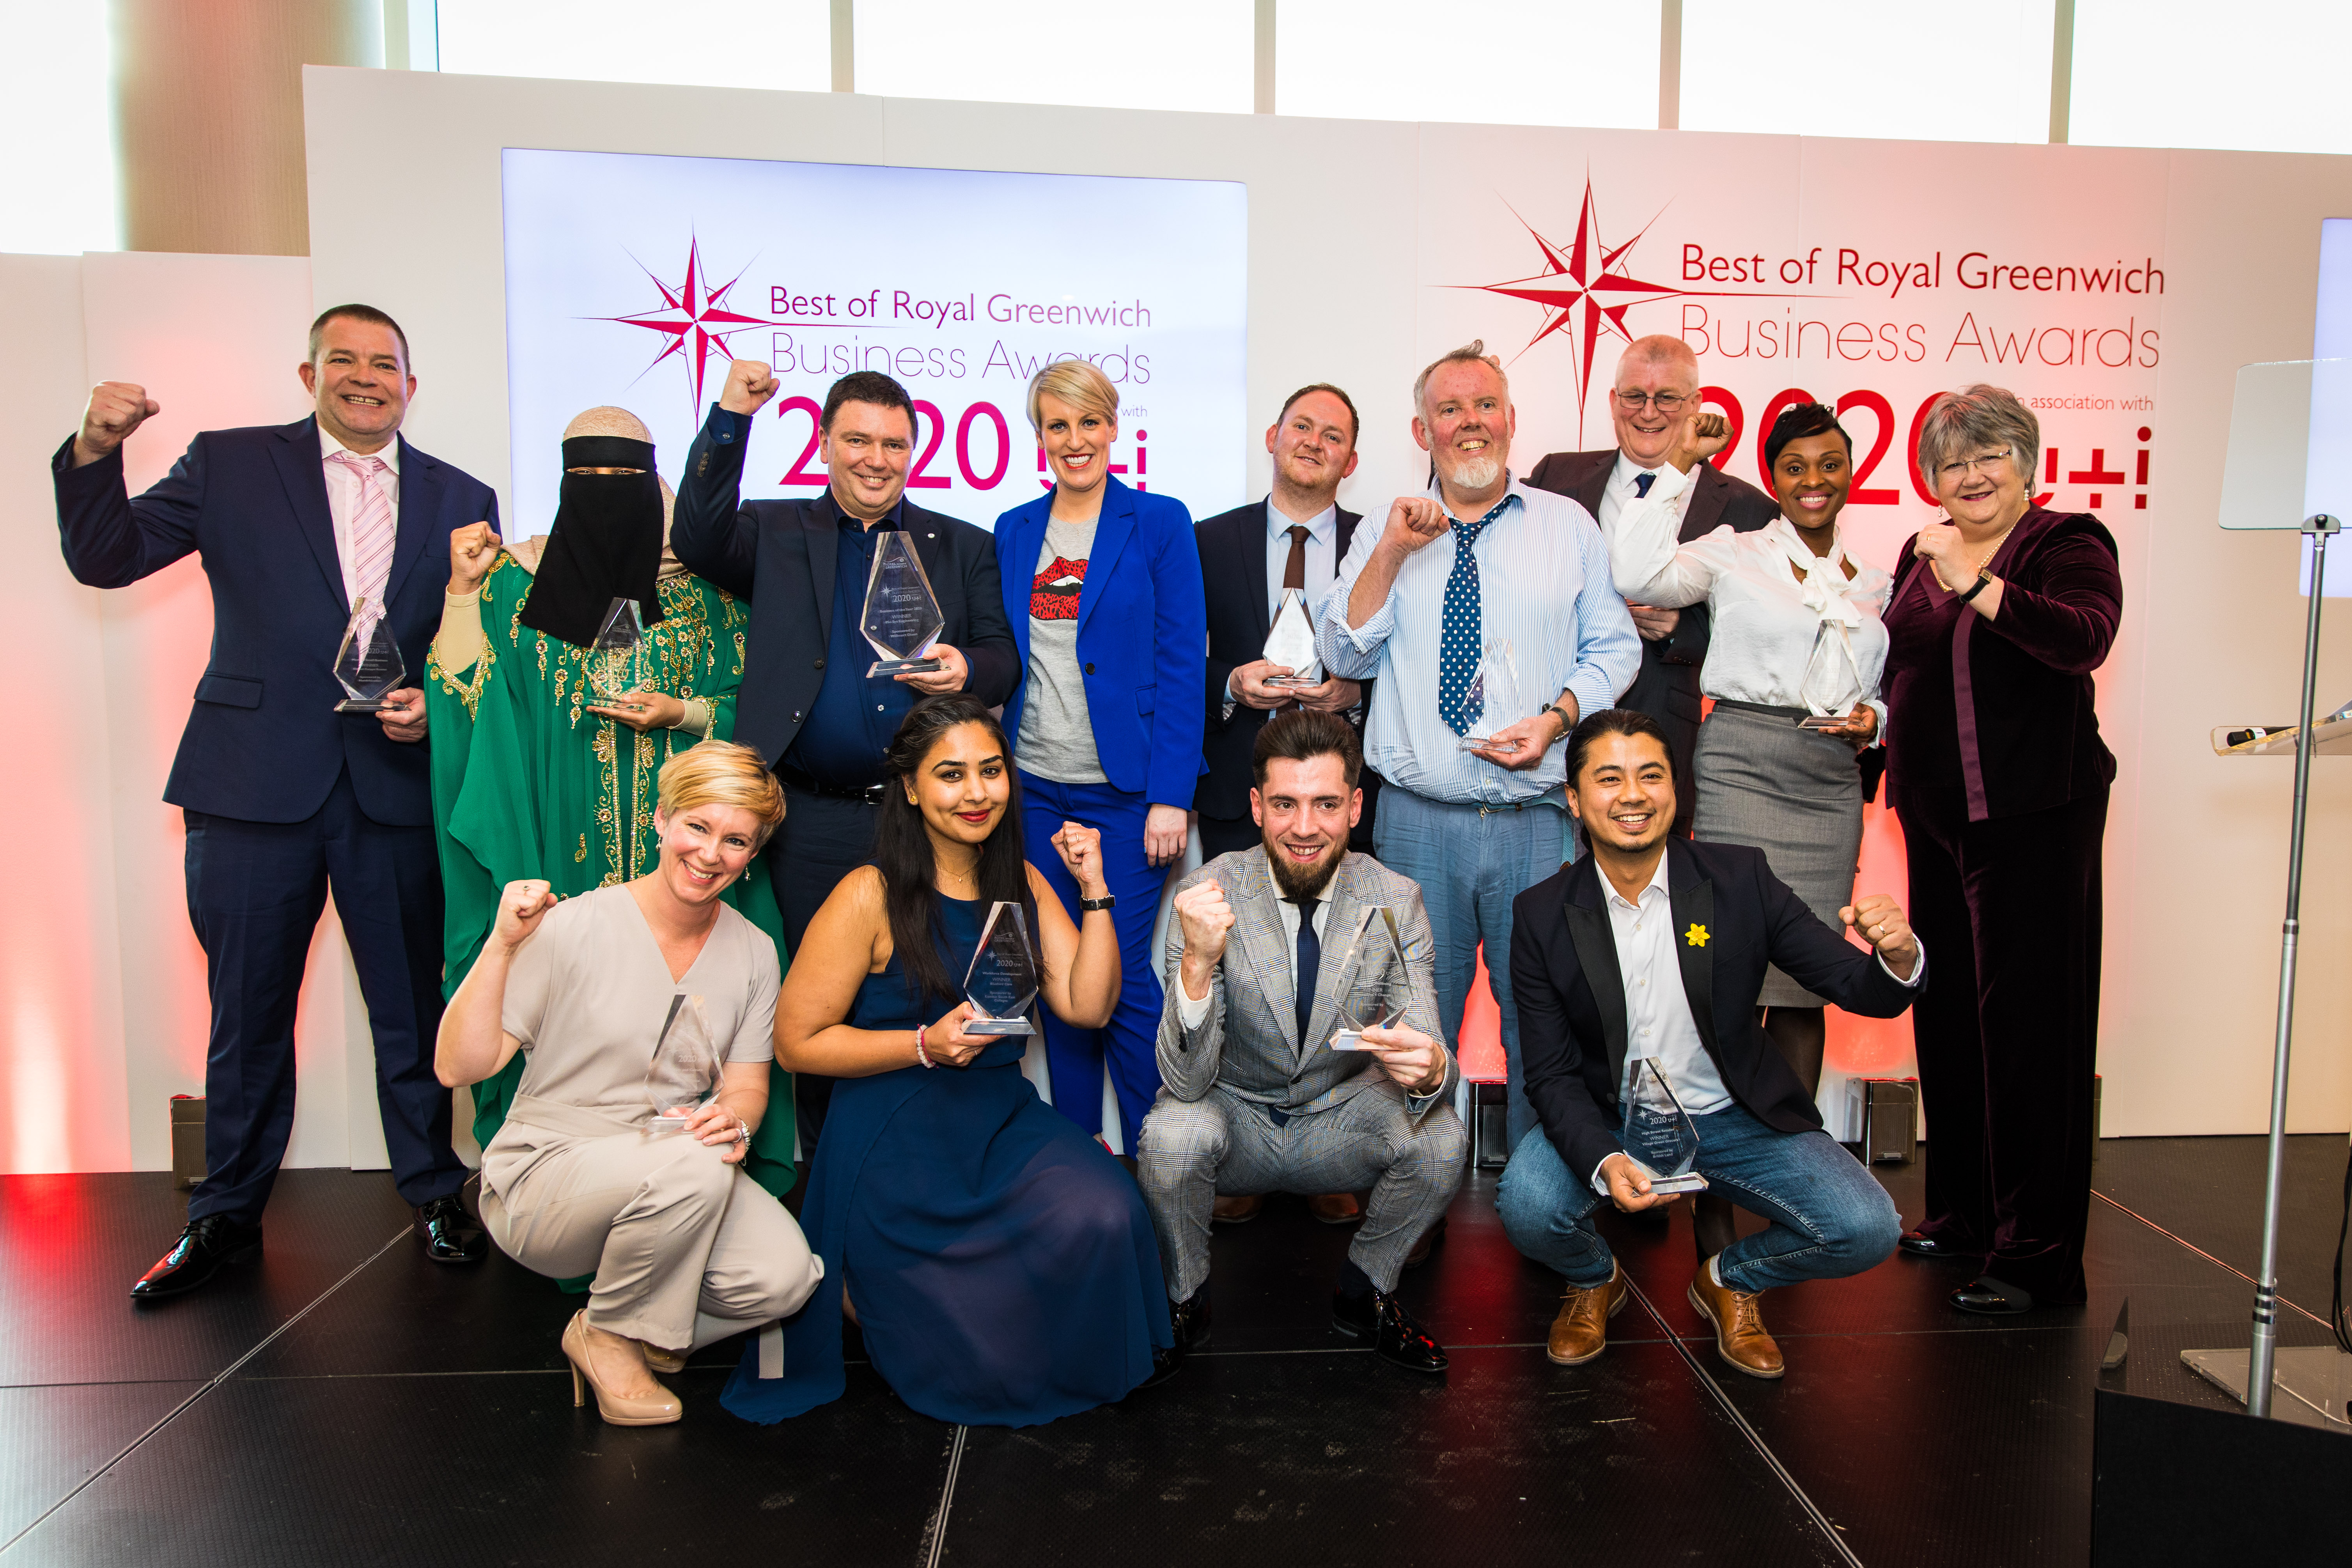 Winners of Best of Royal Greenwich Business Awards 2020